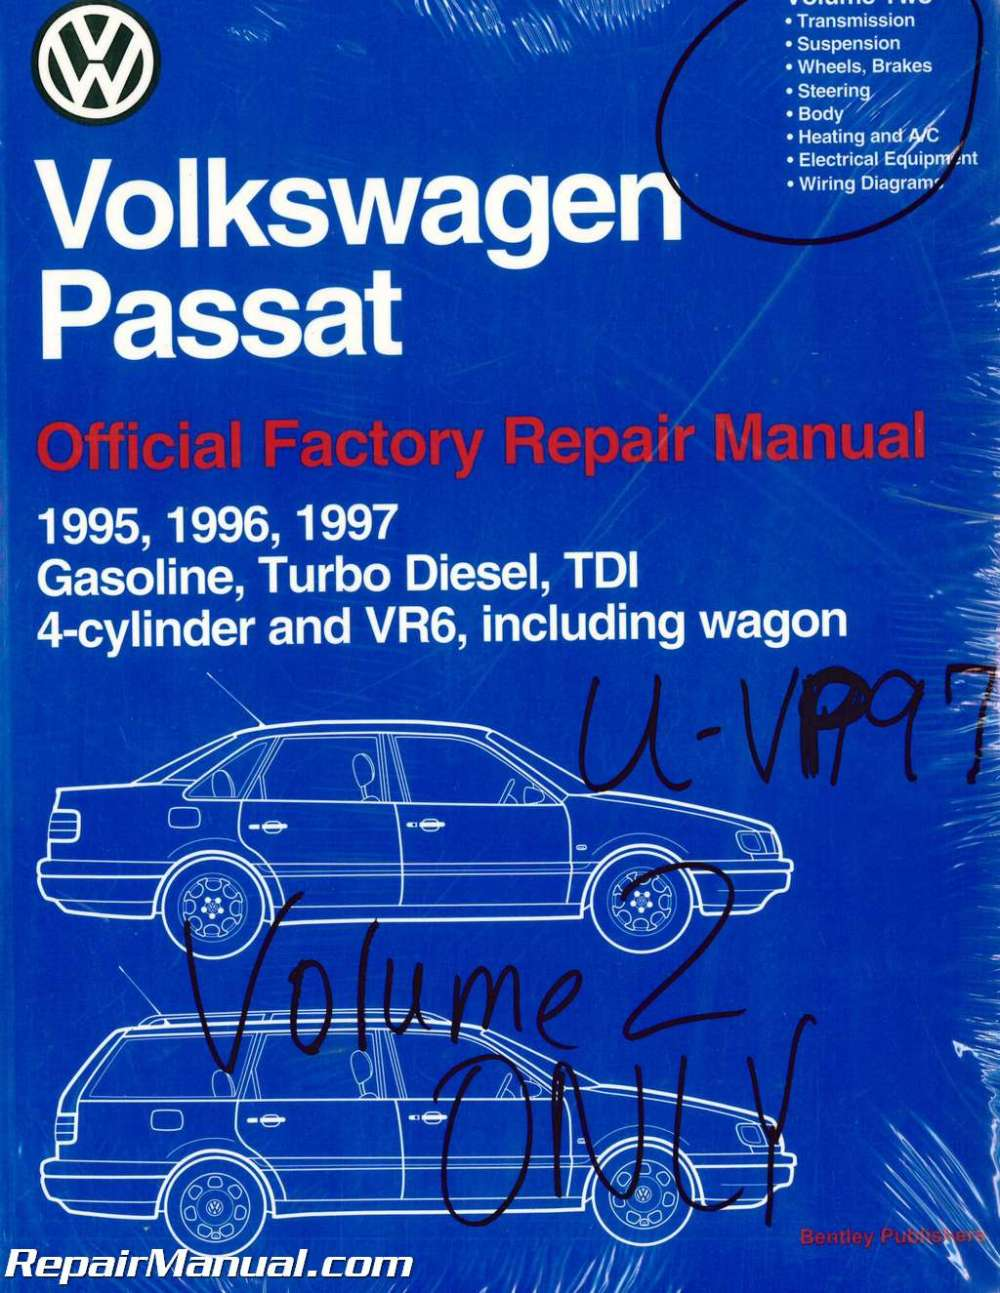 medium resolution of volume 2 only volkswagen passat b4 repair manual 1995 1996volume 2 only volkswagen